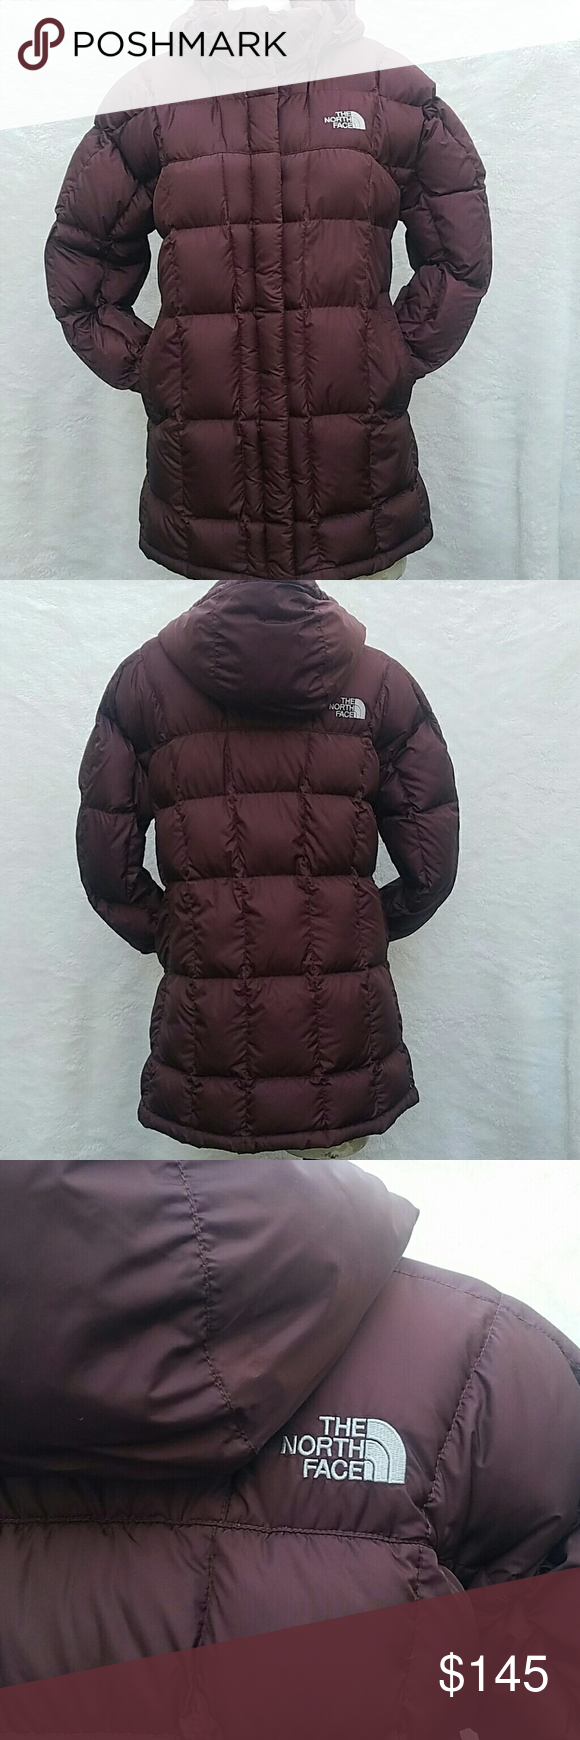 The North Face jacket North Face feather jacket 600. Has a hood is removable and attachable with buttons. Like new in perfect condition. North Face Jackets & Coats